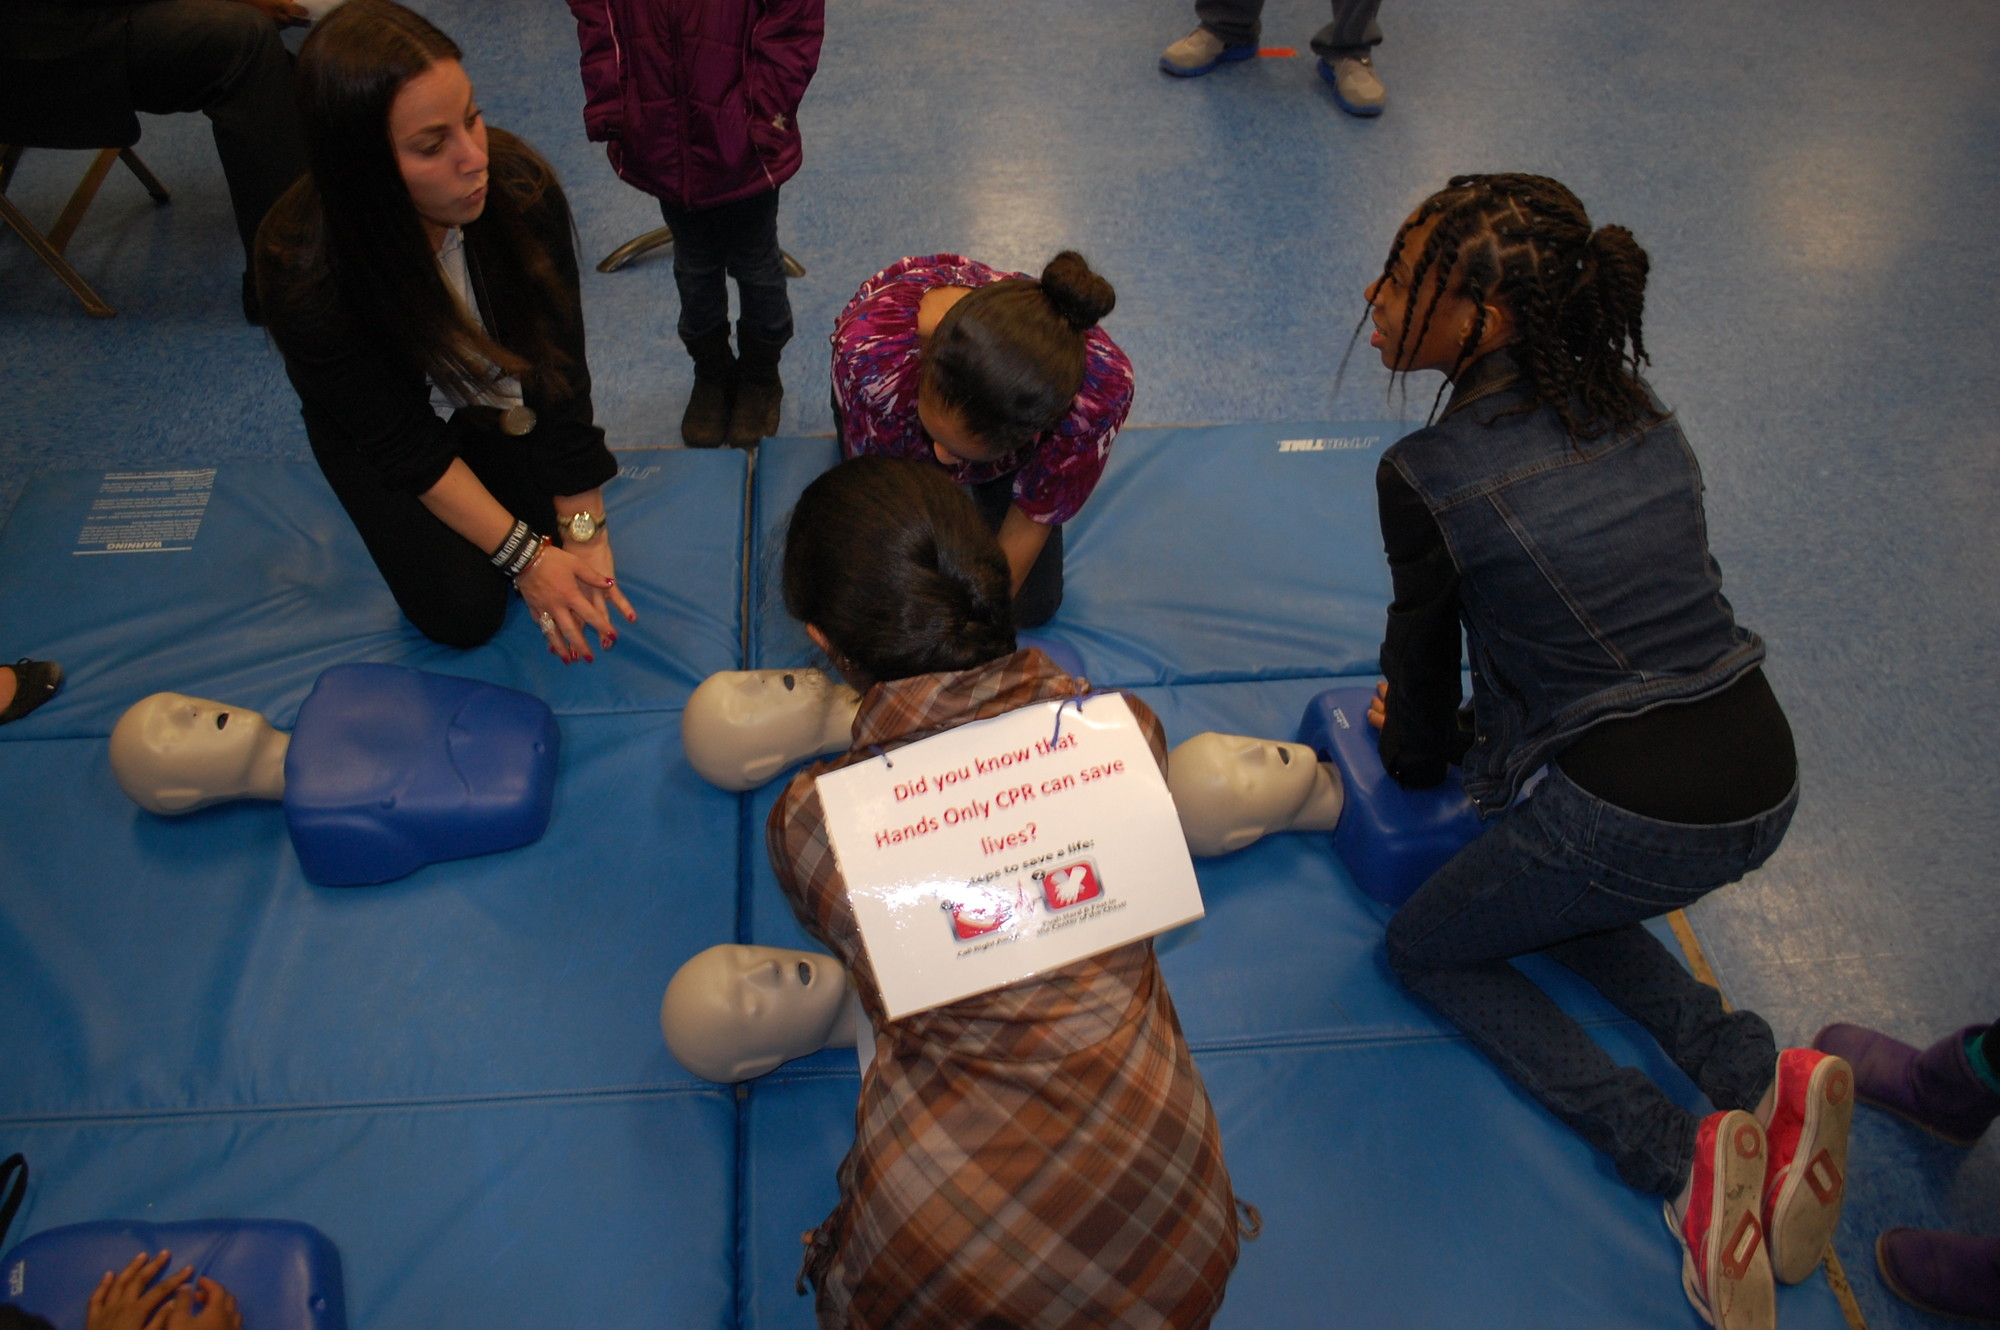 District 30 Quest teacher Ilissa Epstein, left, gave CPR demonstrations to students and community members at Memorial Junior High School.